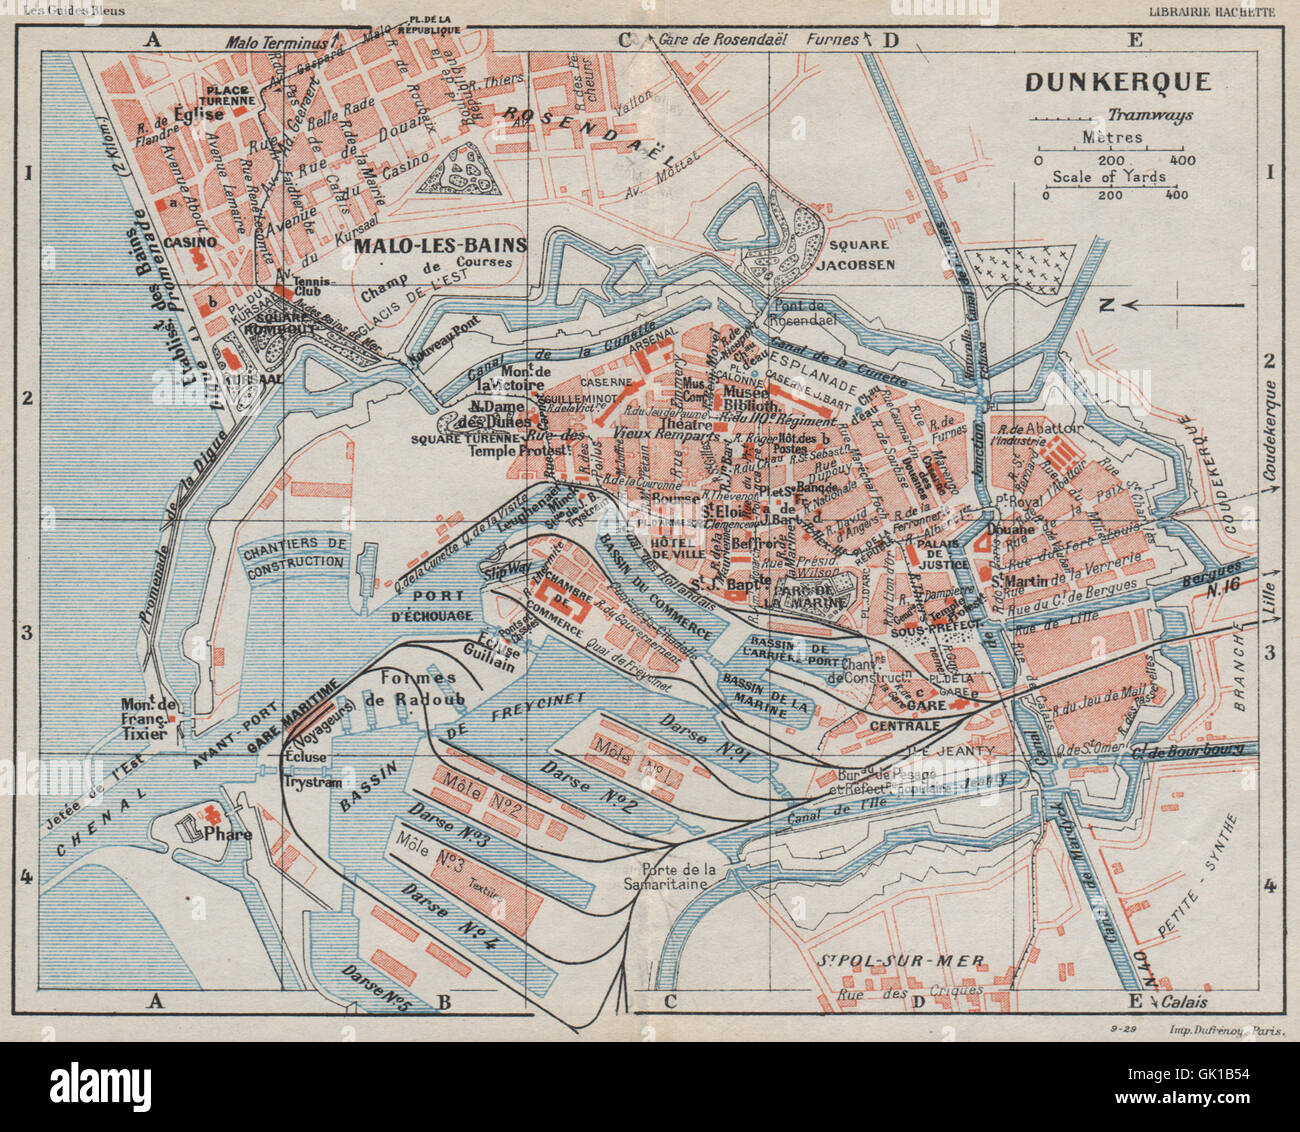 Dunkerque  Vintage Town City Map Plan  Nord  1930 Stock